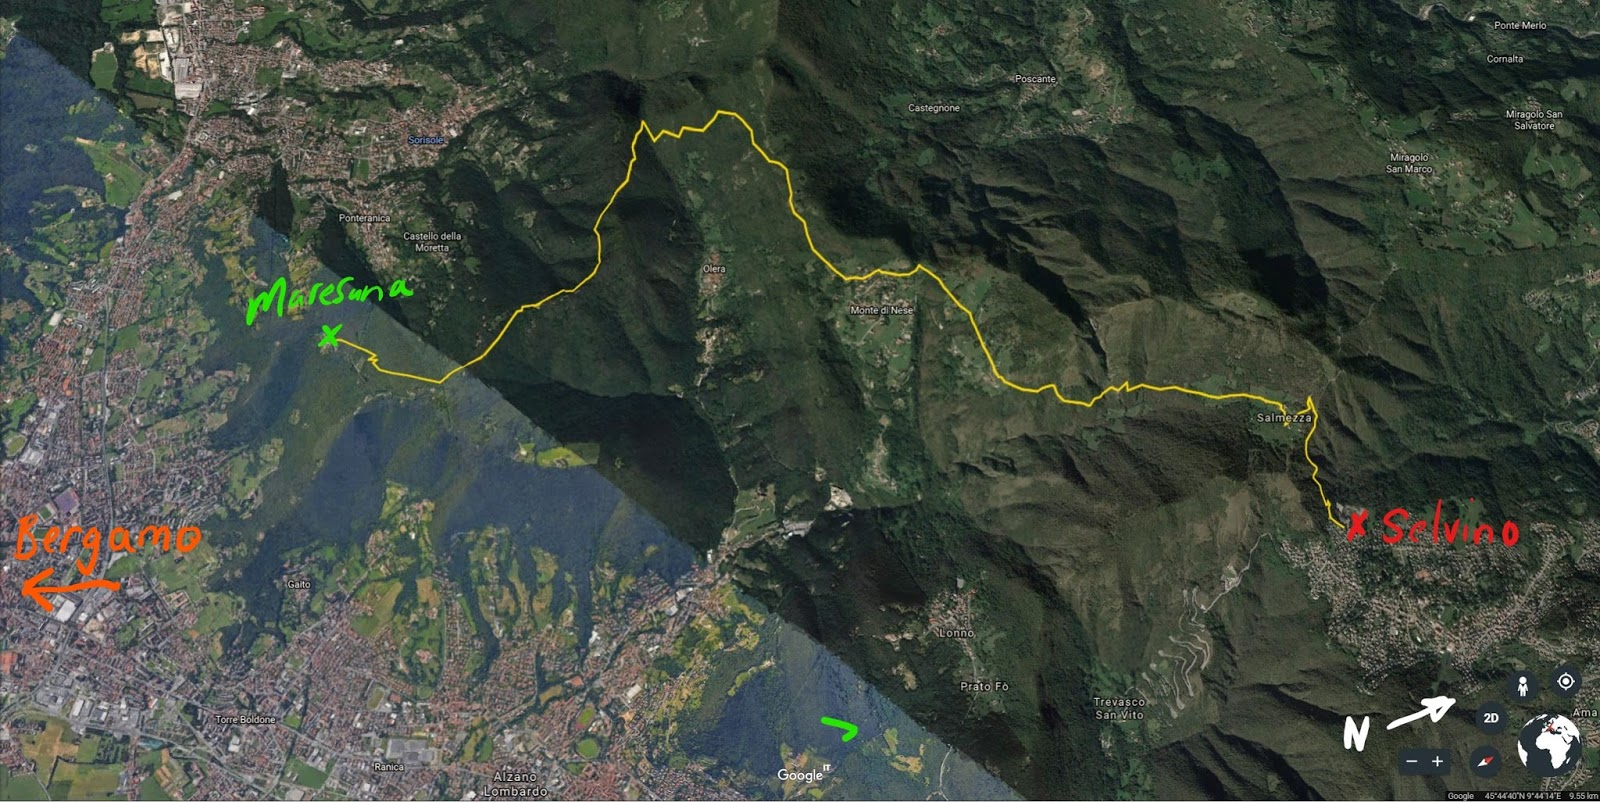 Hiking route from Maresana to Selvino along trail 533.